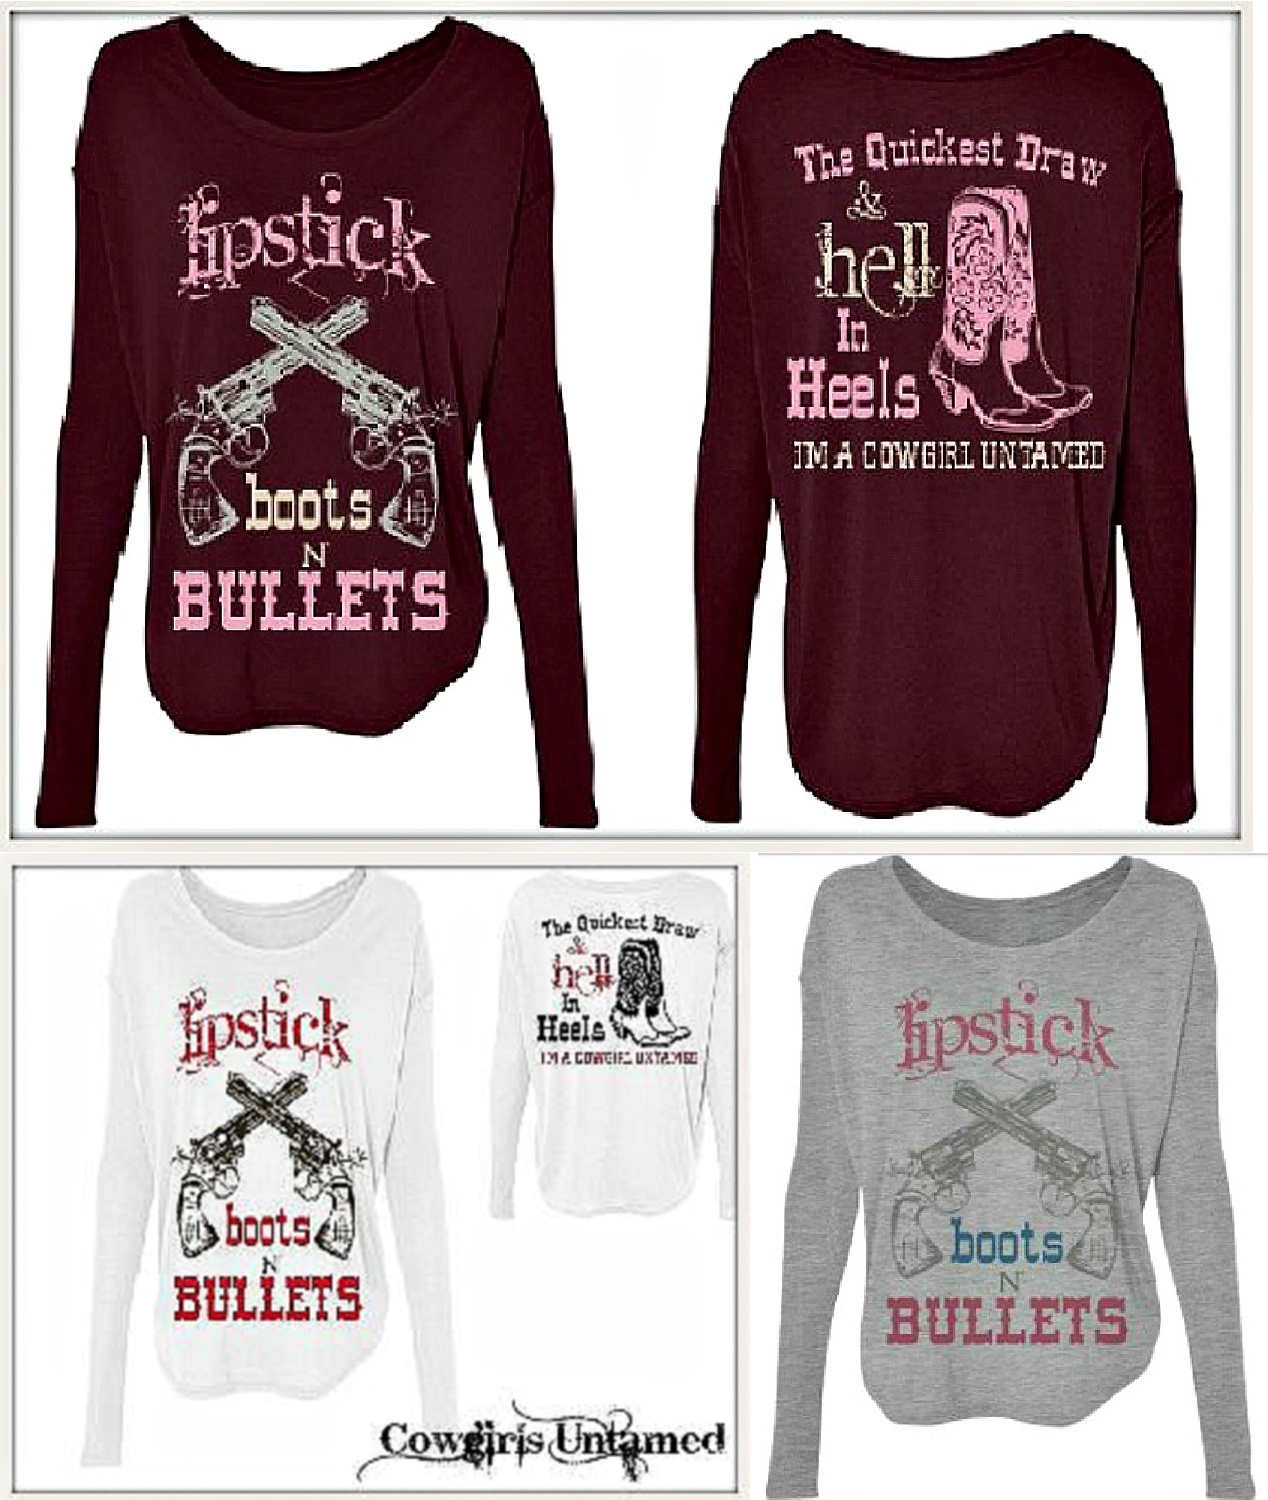 """BADASS COWGIRL TOP """"Lipstick Boots N Bullets The Quickest Draw & Hell in Heels..."""" Long Sleeve Top 2 COLORS"""